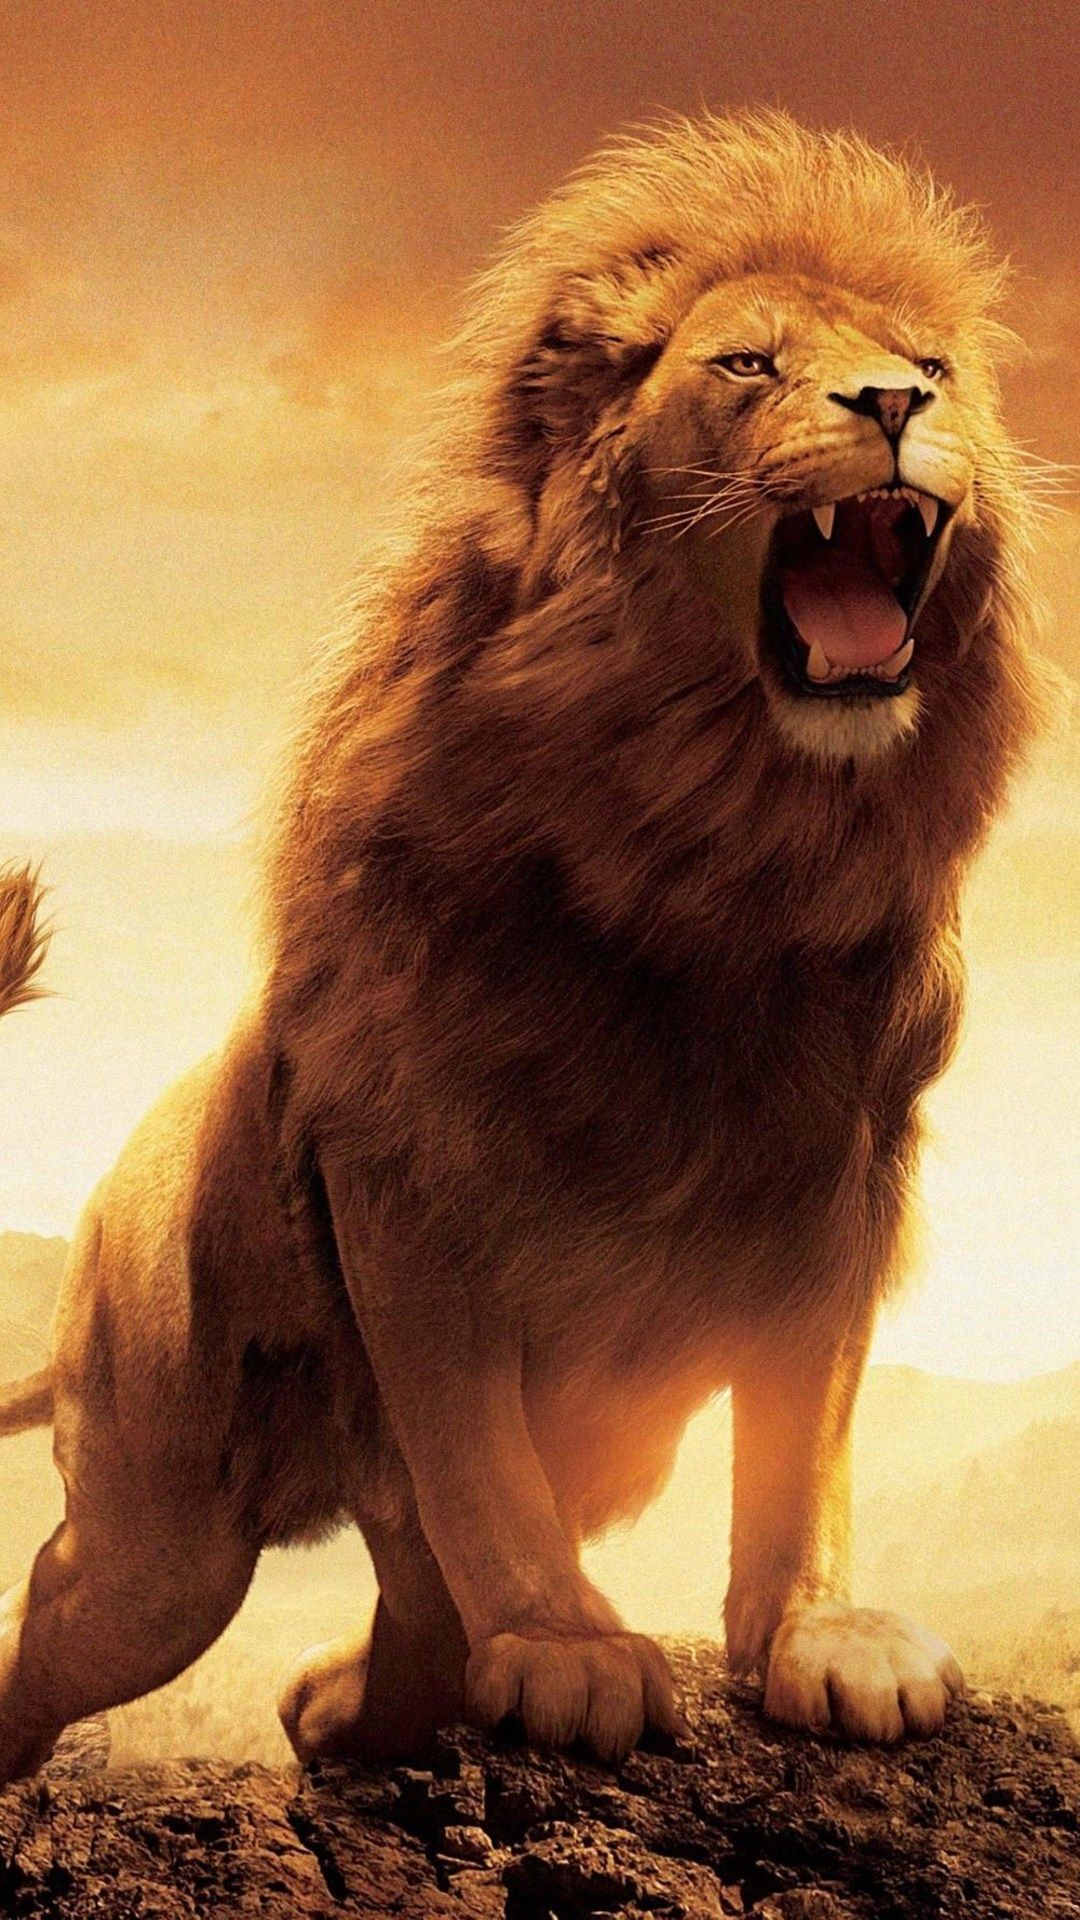 Lion Wallpaper Iphone Hupages Download Iphone Wallpapers Lion Wallpaper Iphone Lion Pictures Lion Images